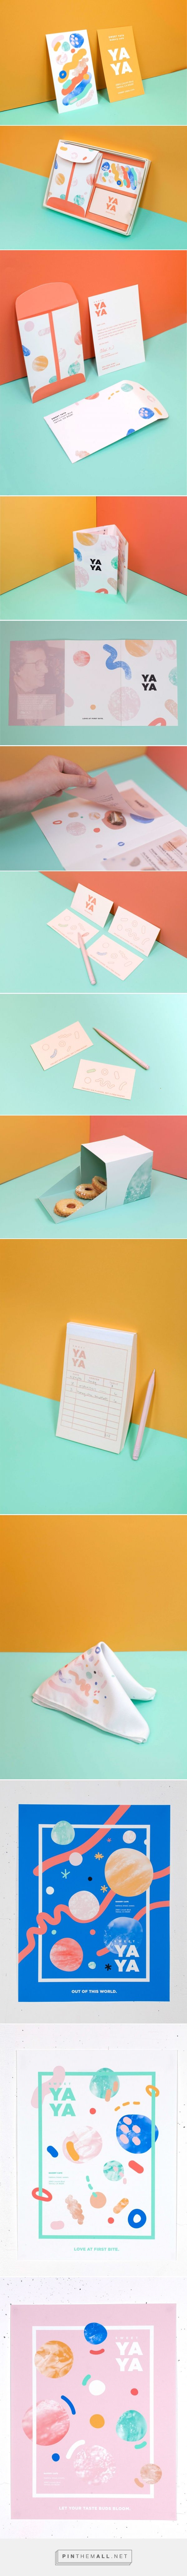 Sweet Yaya Bakery Branding by Sara Haas | Fivestar Branding Agency – Design and Branding Agency & Curated Inspiration Gallery